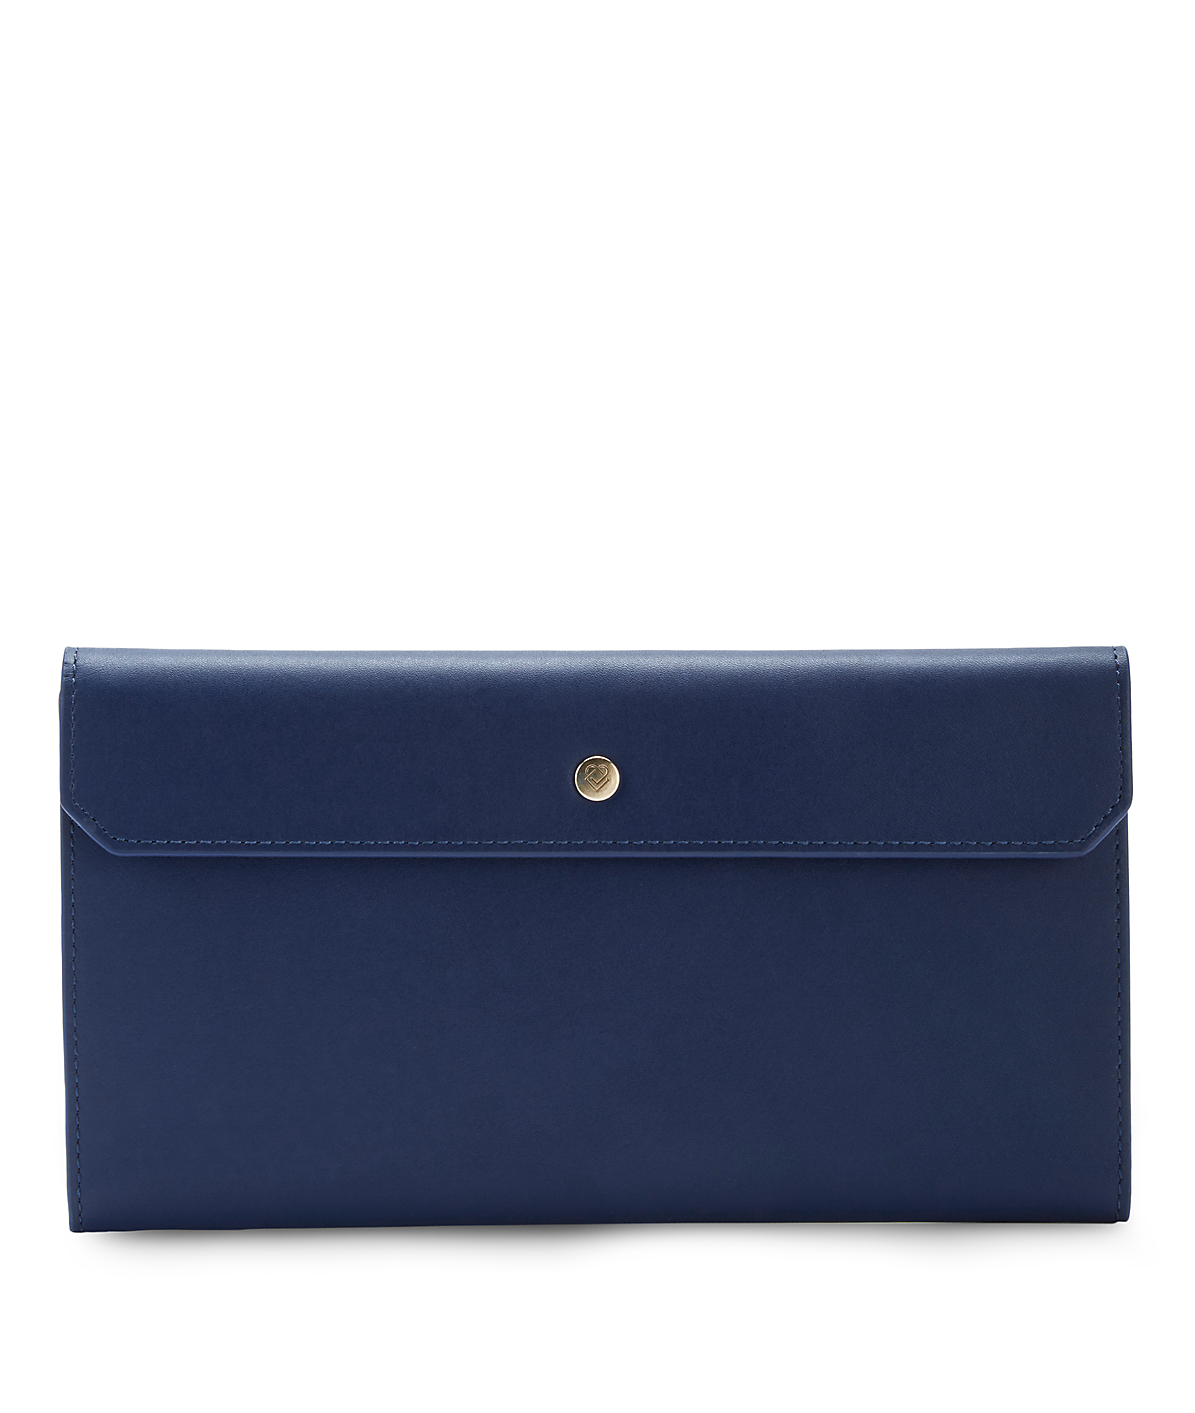 Jessy wallet from liebeskind